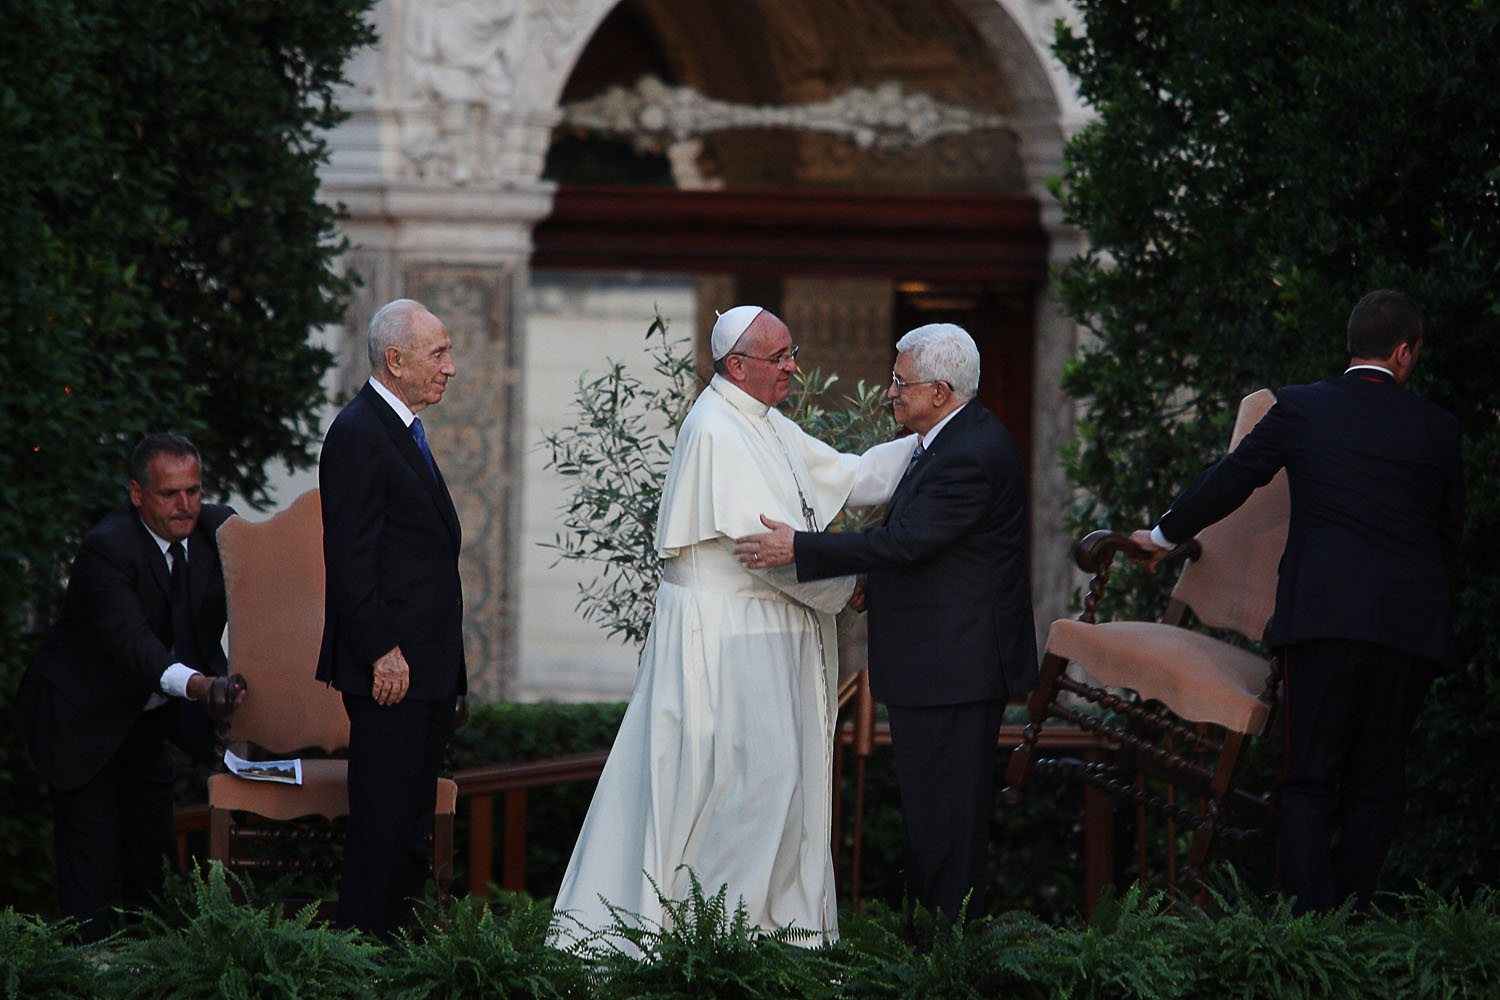 Jun. 8, 2014. Pope Francis (C) with Palestinian leader Mahmud Abbas (R) and Israeli President Shimon Peres during a joint peace prayer at the Vatican Gardens.